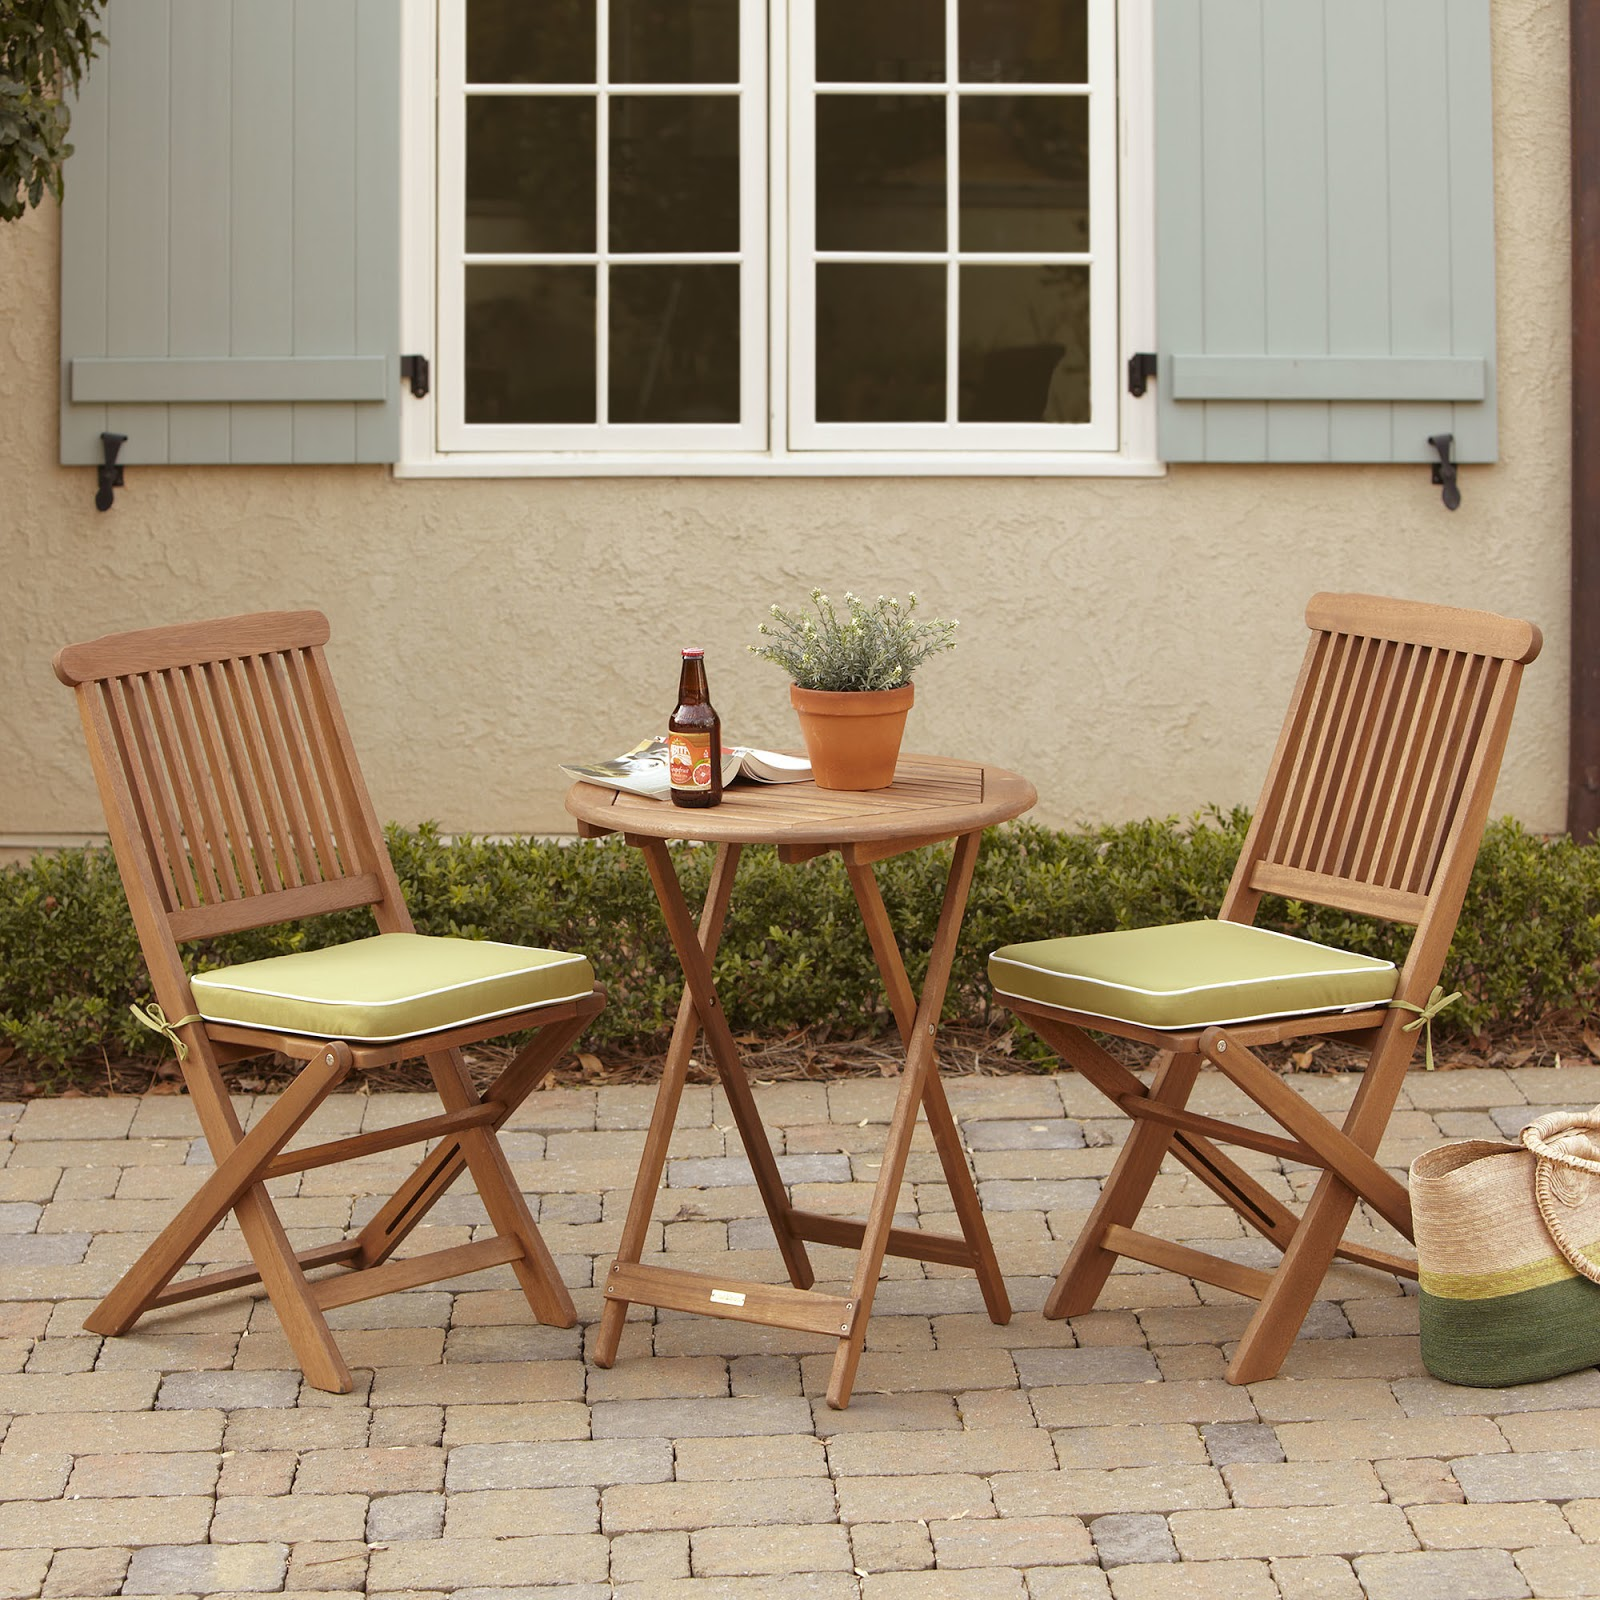 Cottage and Vine: Freshen Up Your Outdoor Rooms With Birch Lane